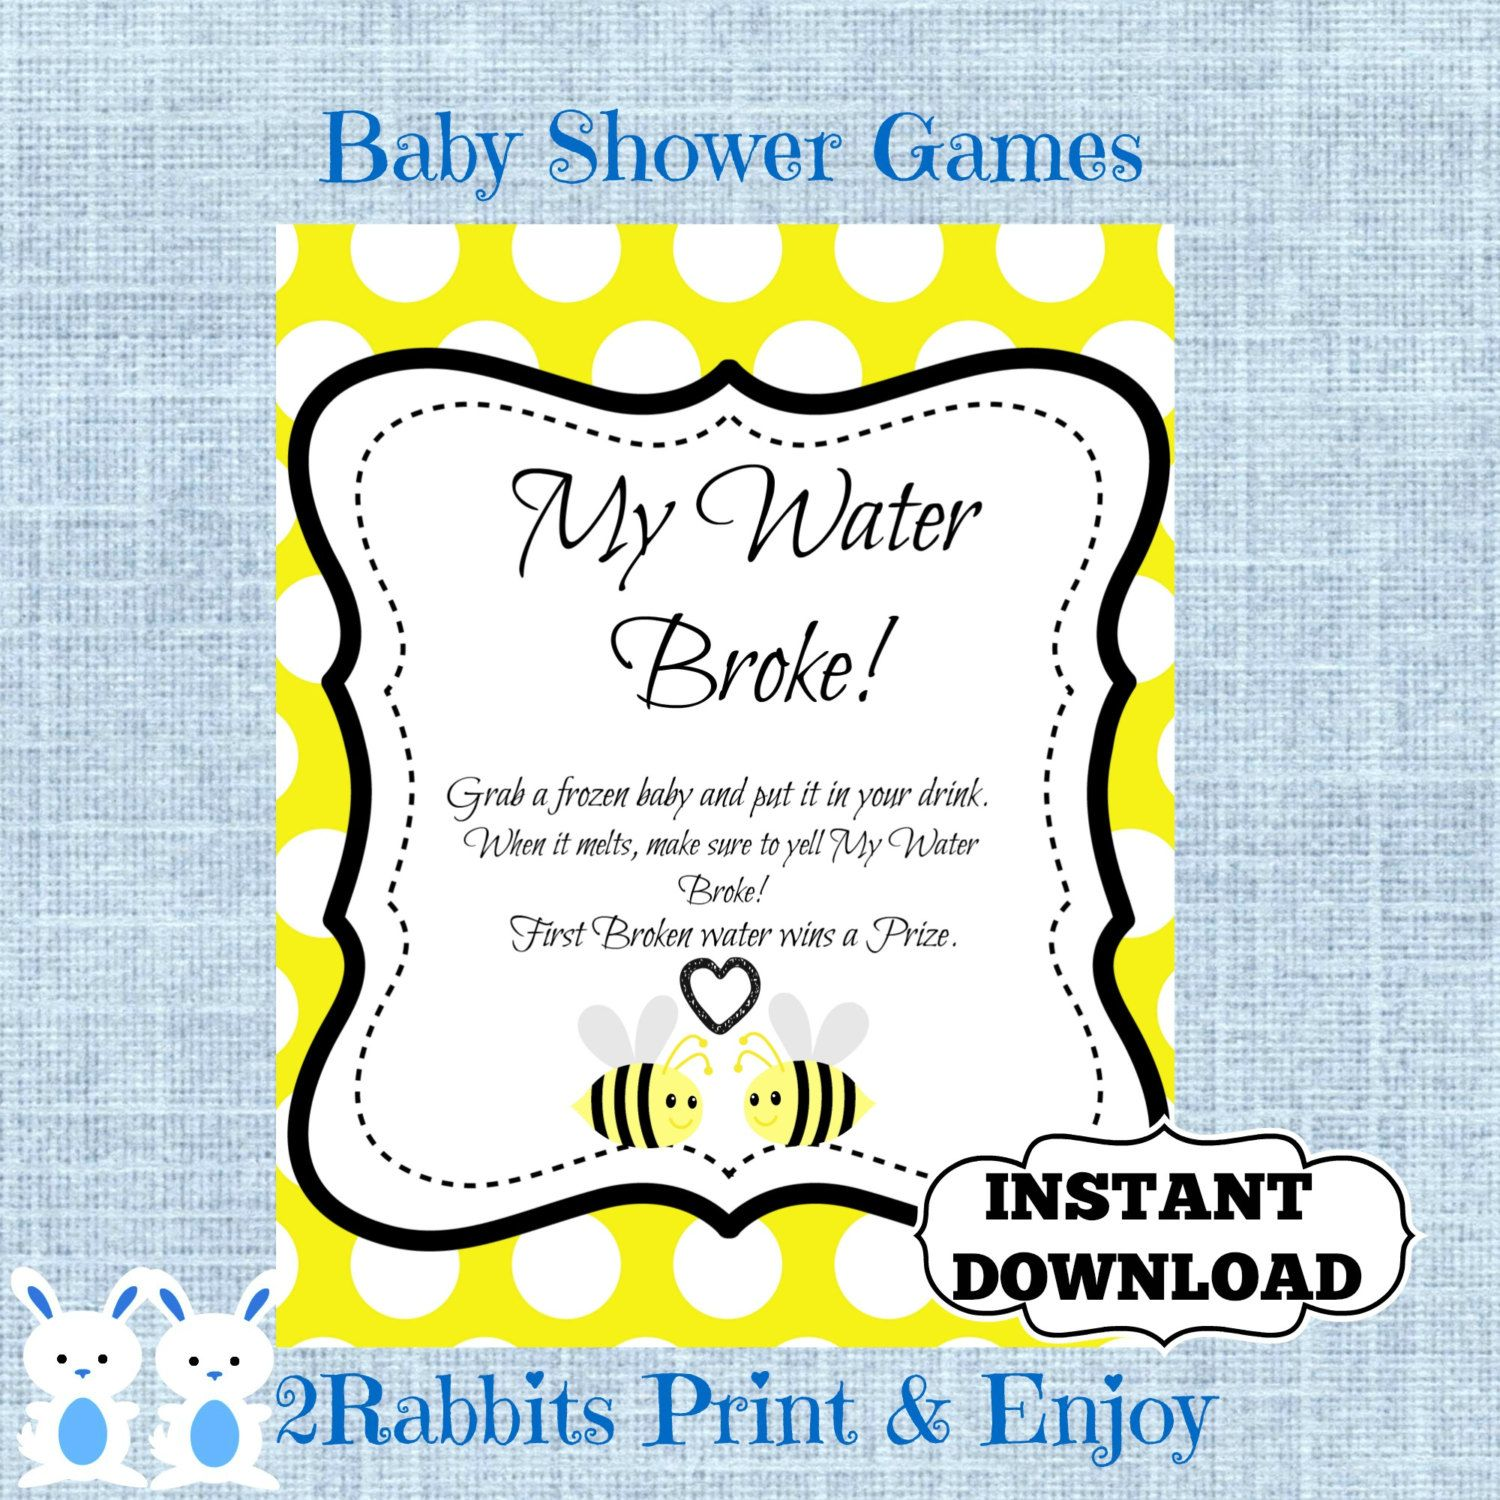 Bumble Bee My Water Broke! Game Sign Bee Baby Shower Game Ice Cube